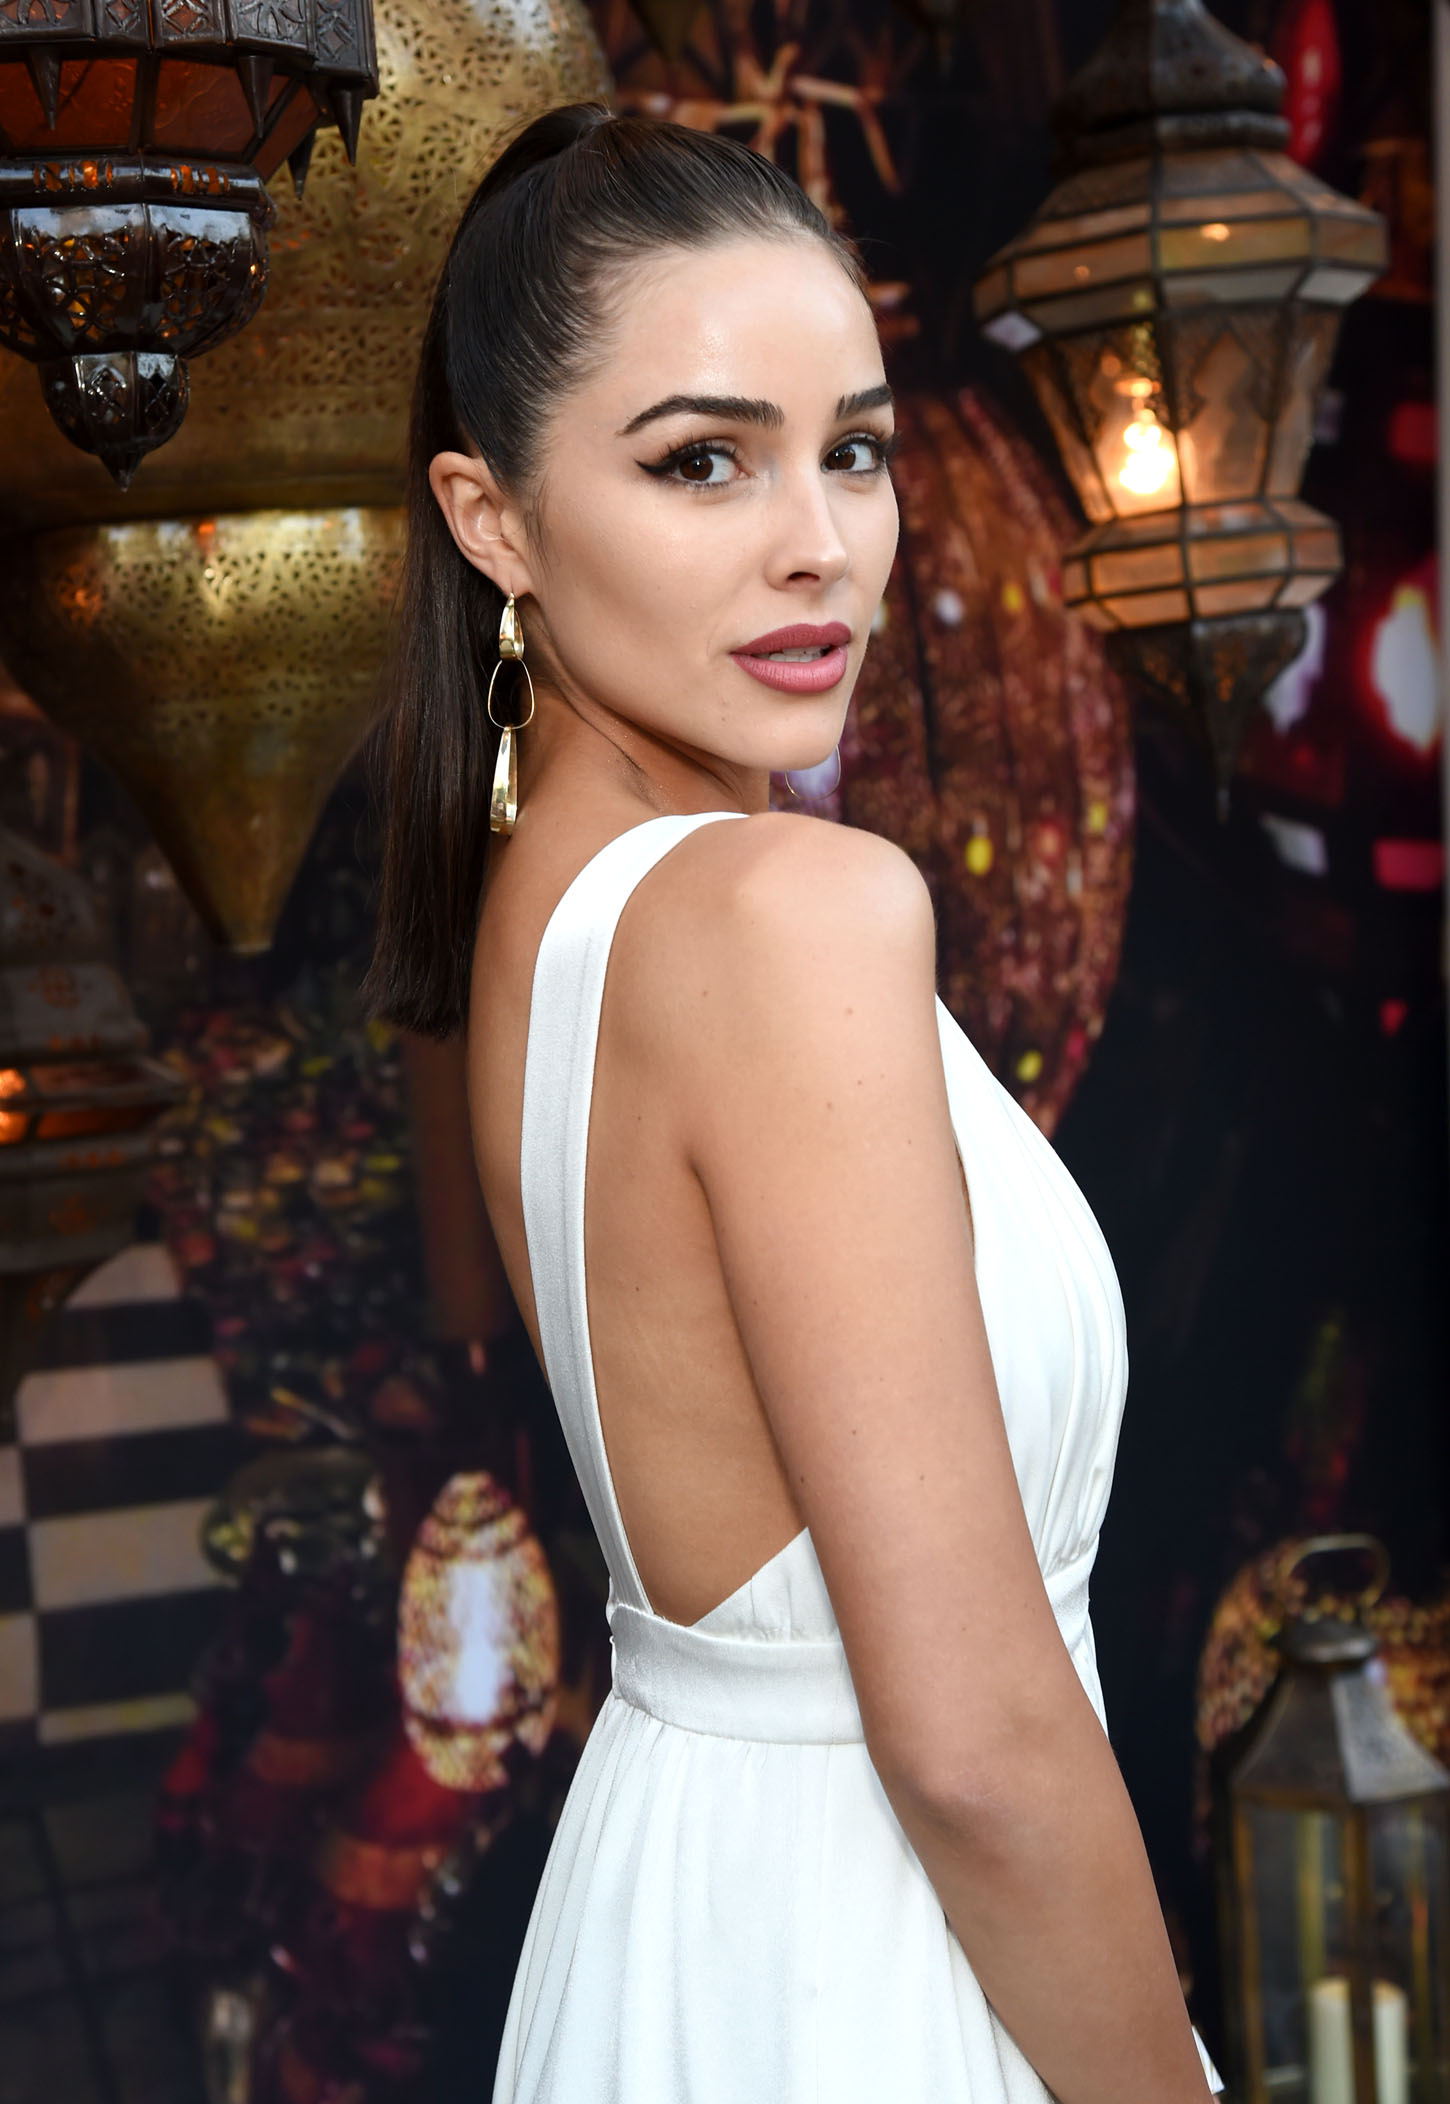 PALM SPRINGS, CA - APRIL 13: Olivia Culpo attends Rachel Zoe's 4th Annual ZOEasis at Parker Palm Springs on April 13, 2018 in Palm Springs, California.  (Photo by Michael Kovac/Getty Images for Belvedere Vodka)